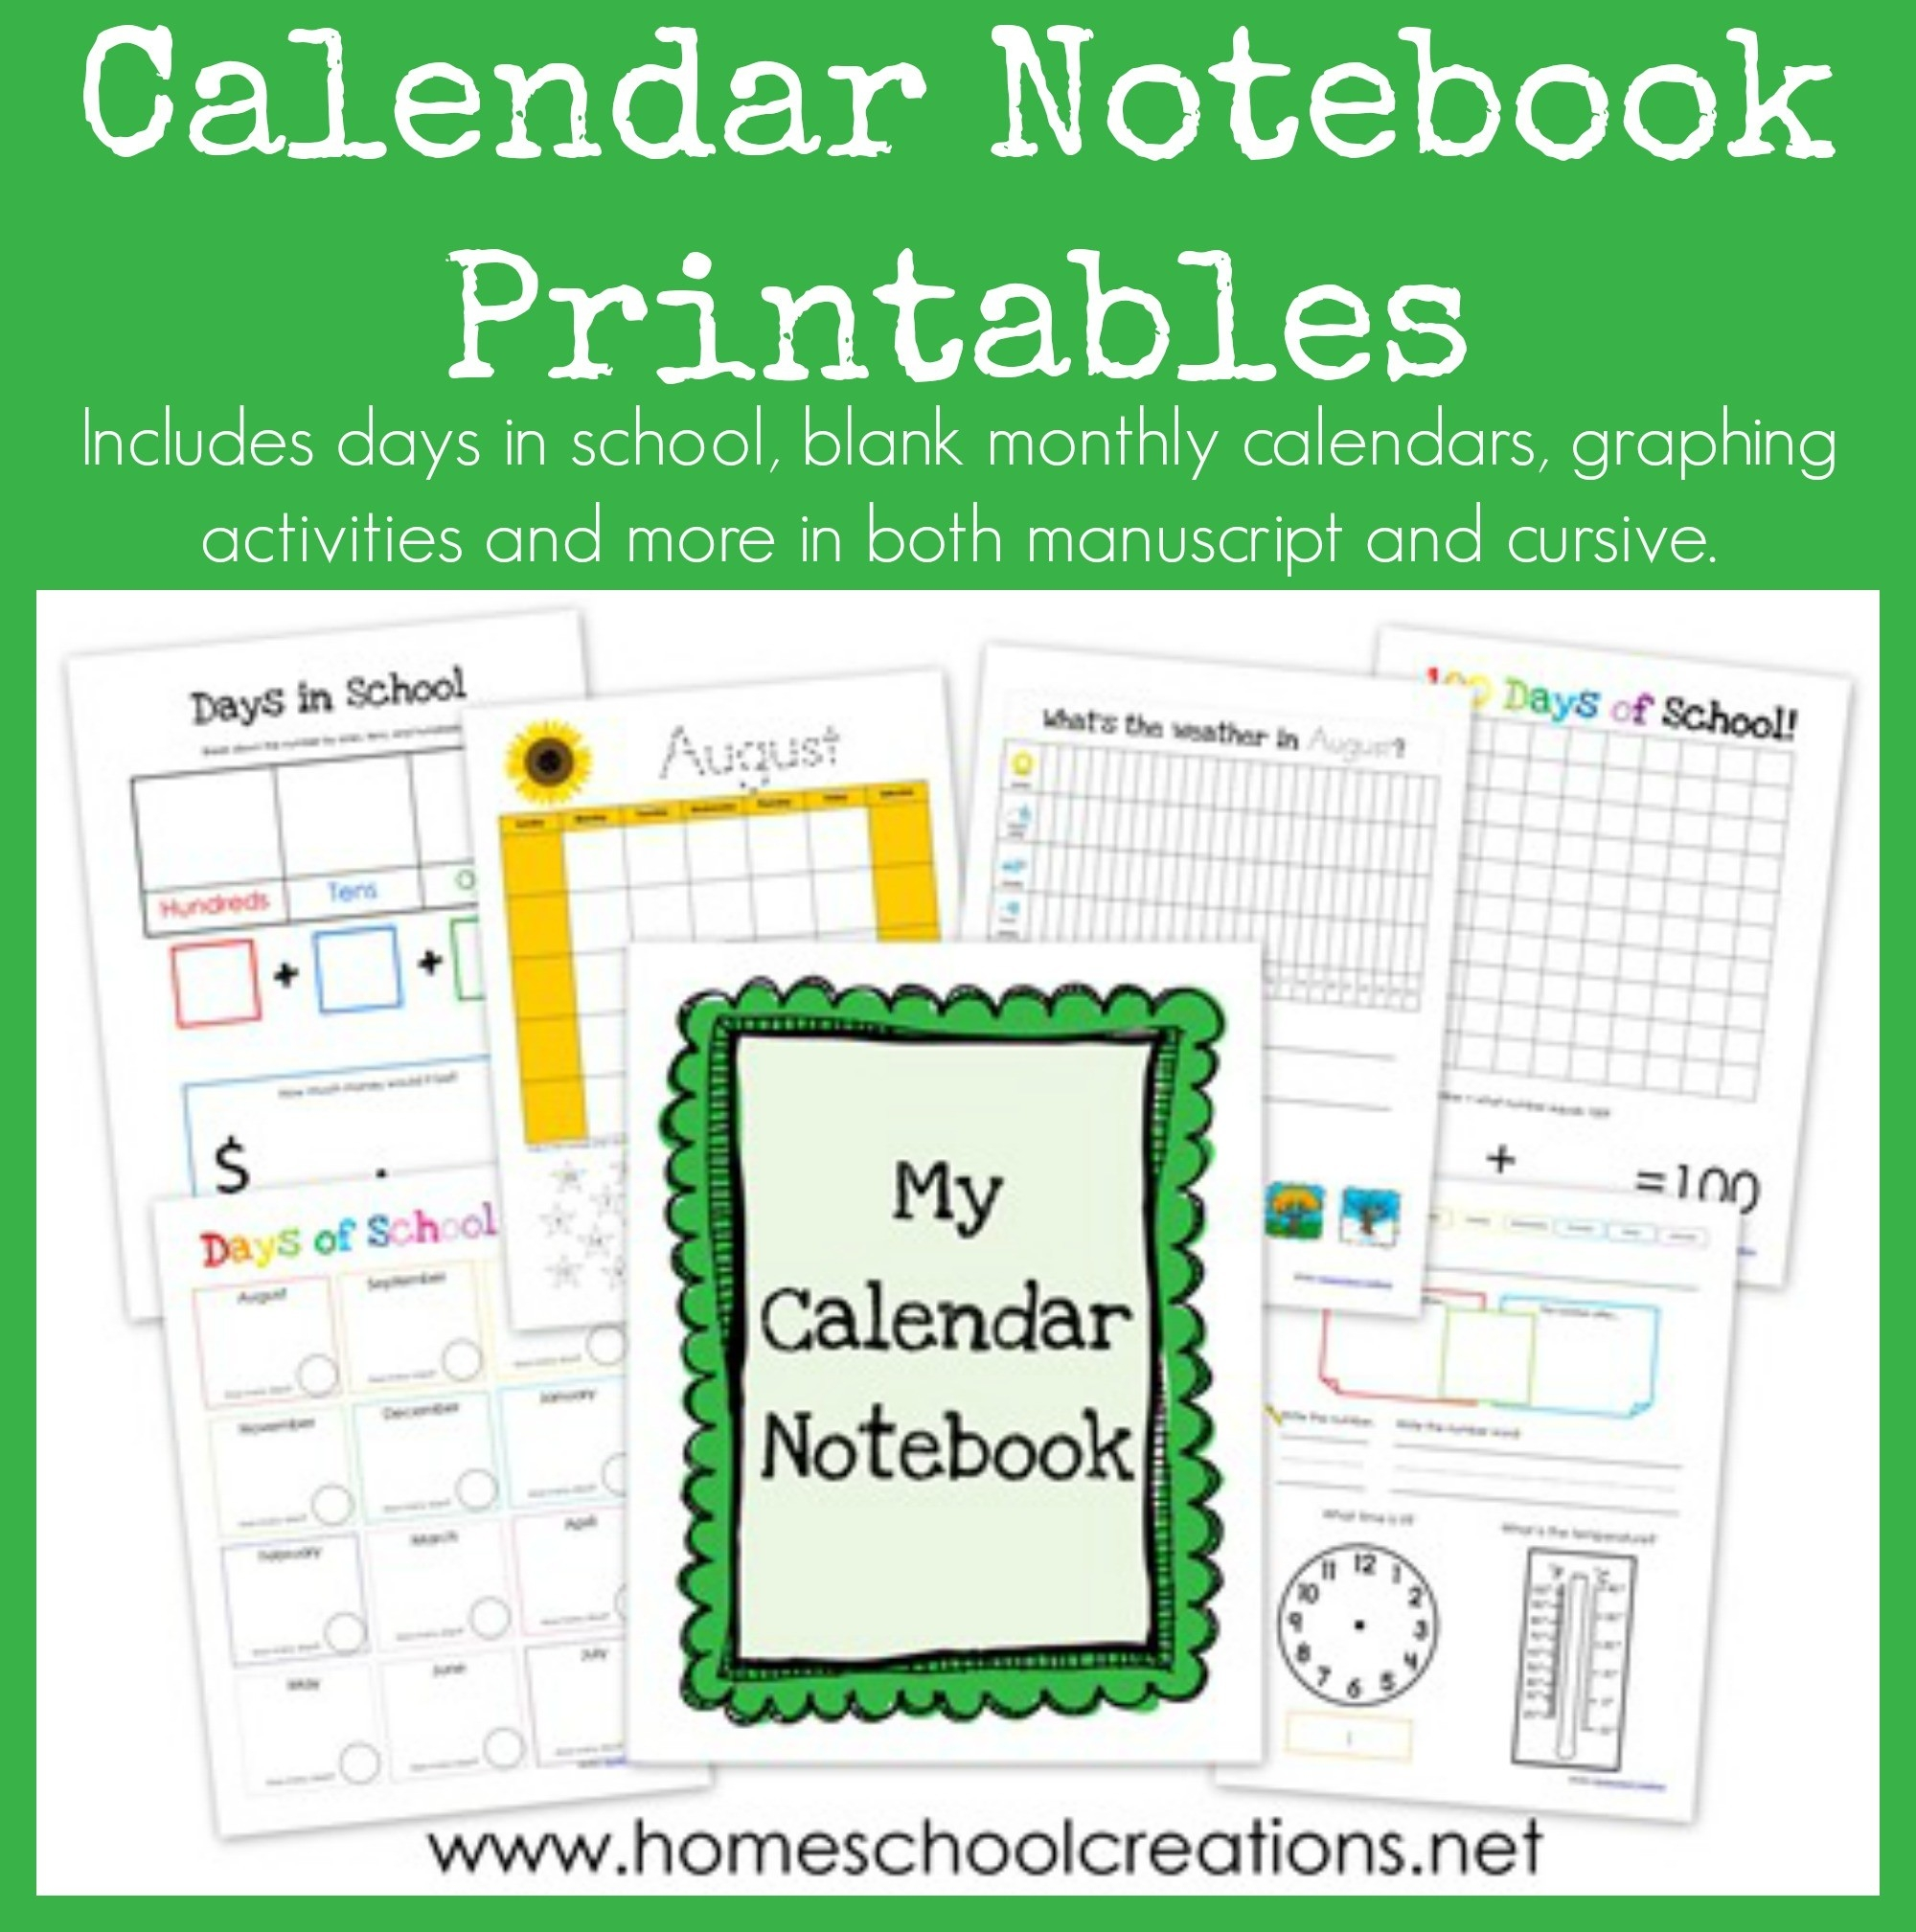 Calendar Notebook Binder Printables-Monthly Calendar Print Out For Notebooks